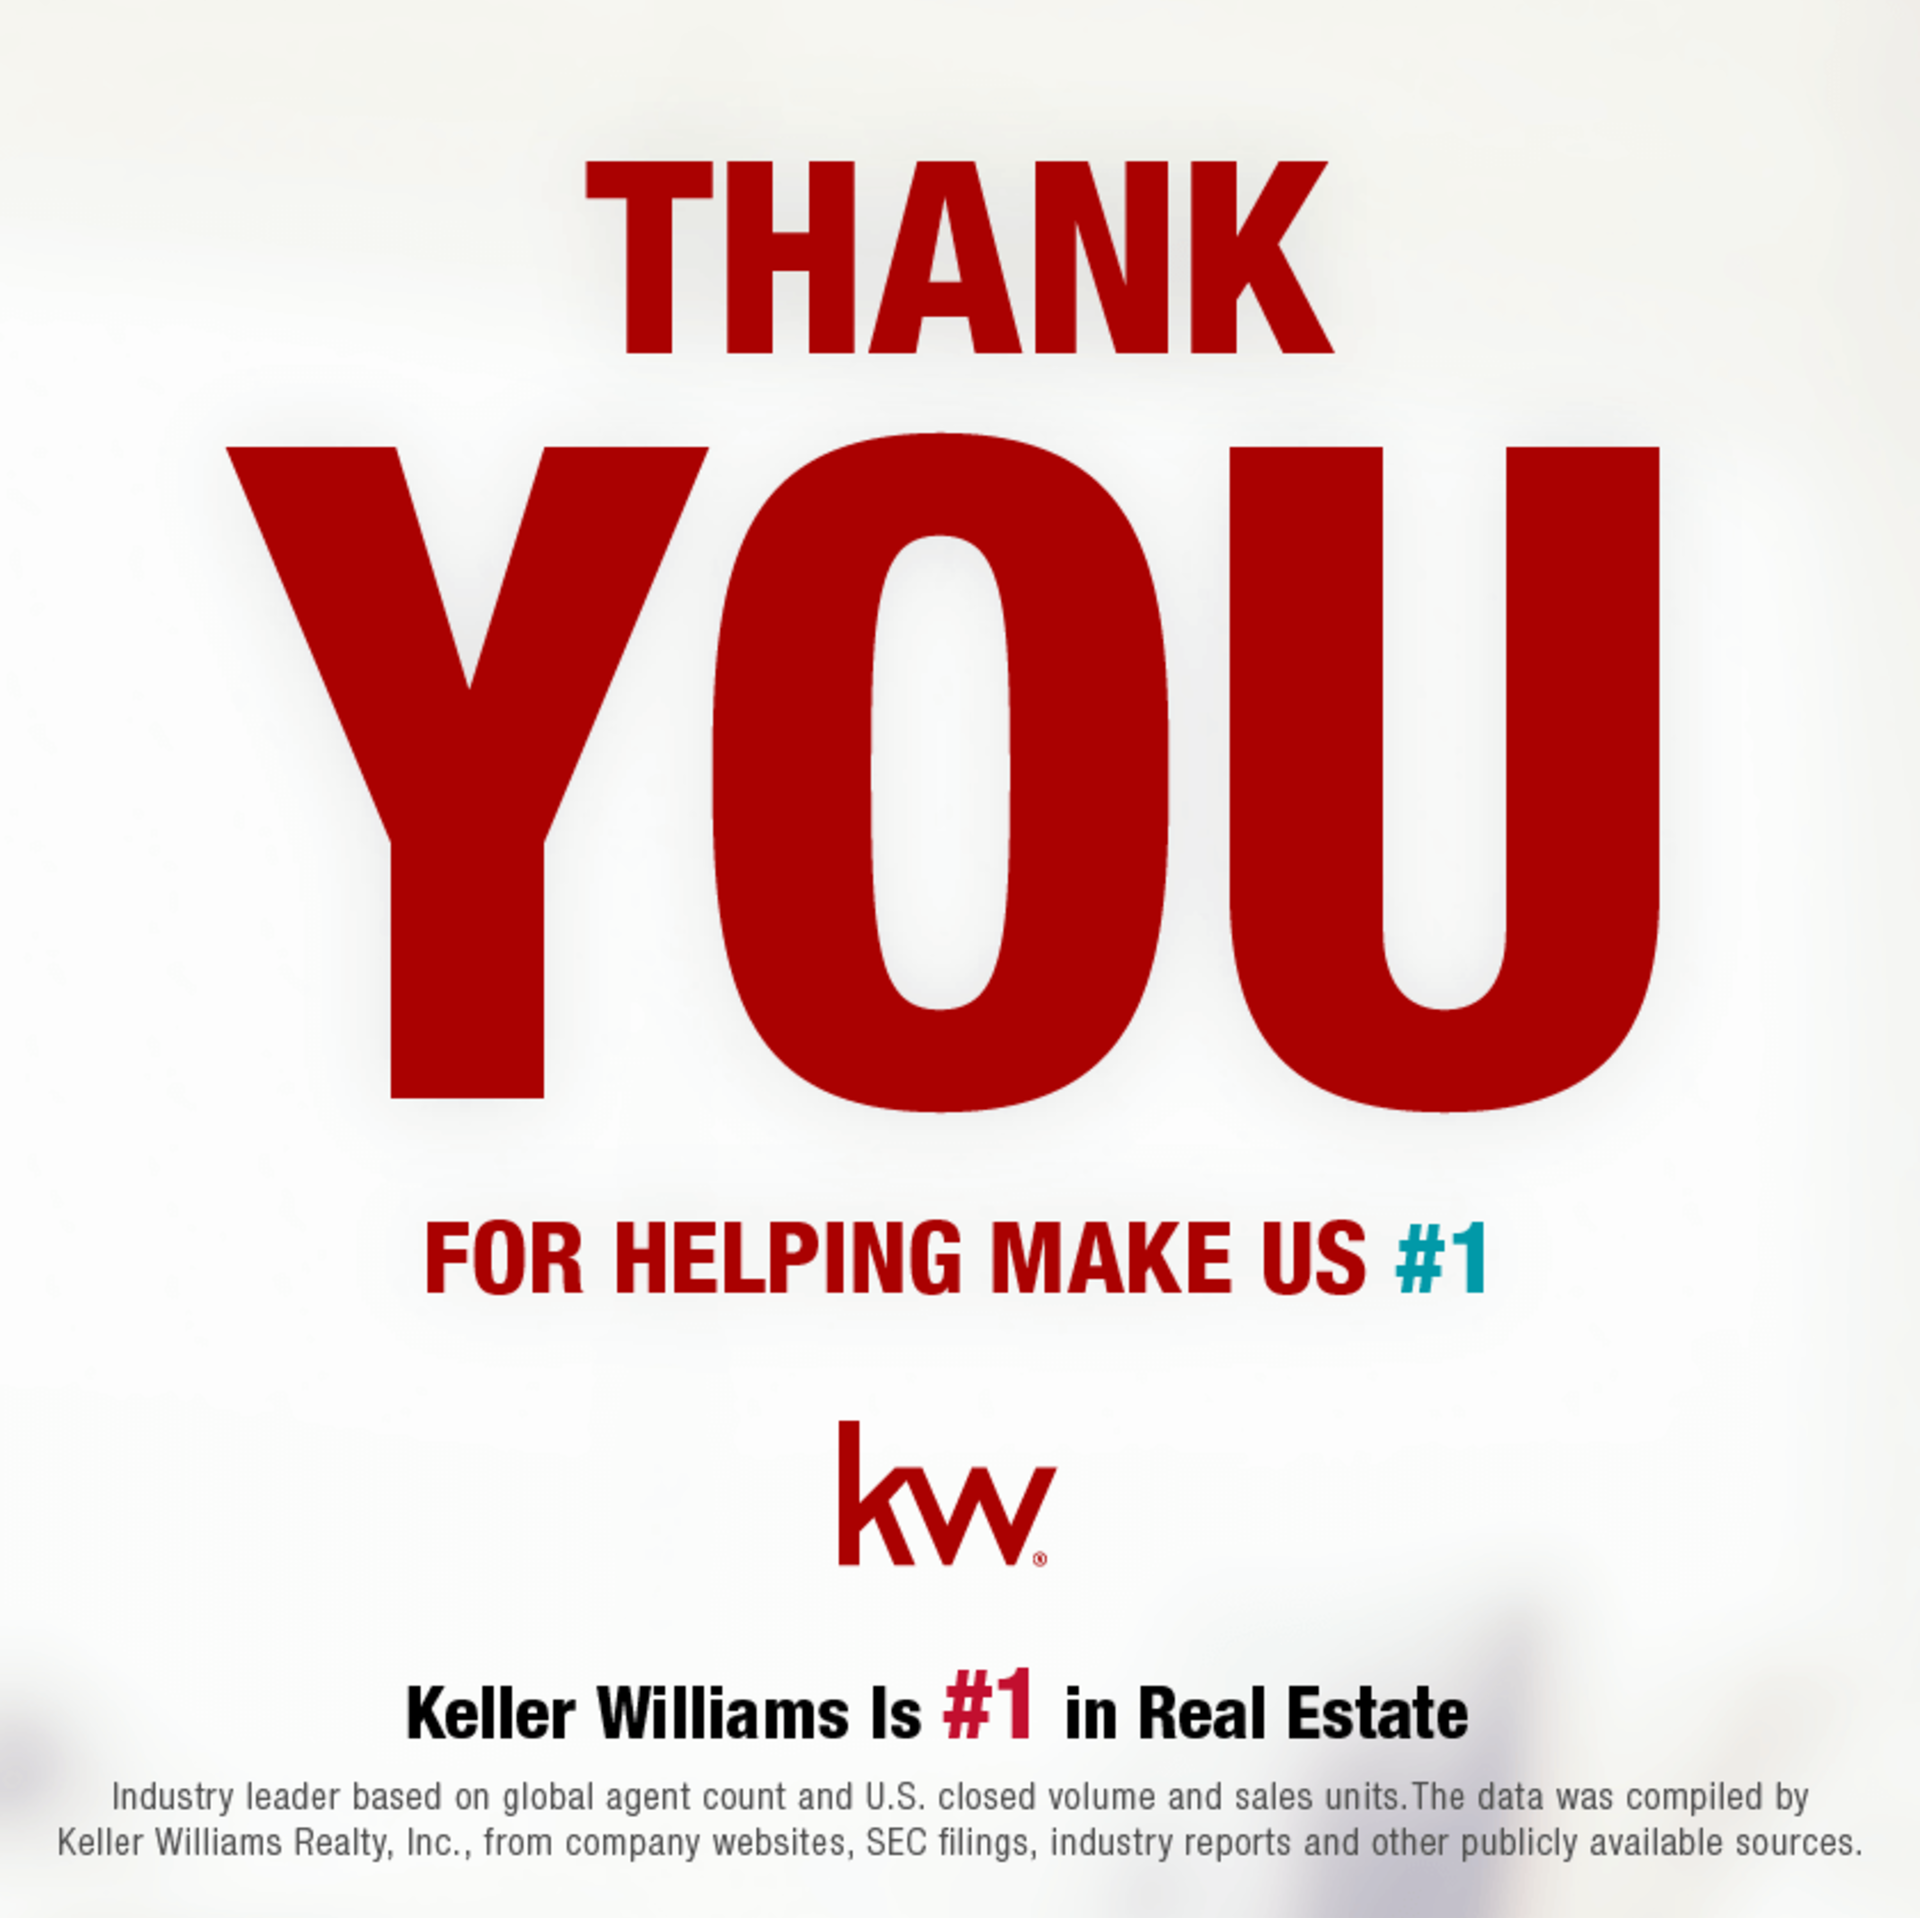 KELLER WILLIAMS REIGNS AS NO. 1 REAL ESTATE FRANCHISE IN THE U.S.